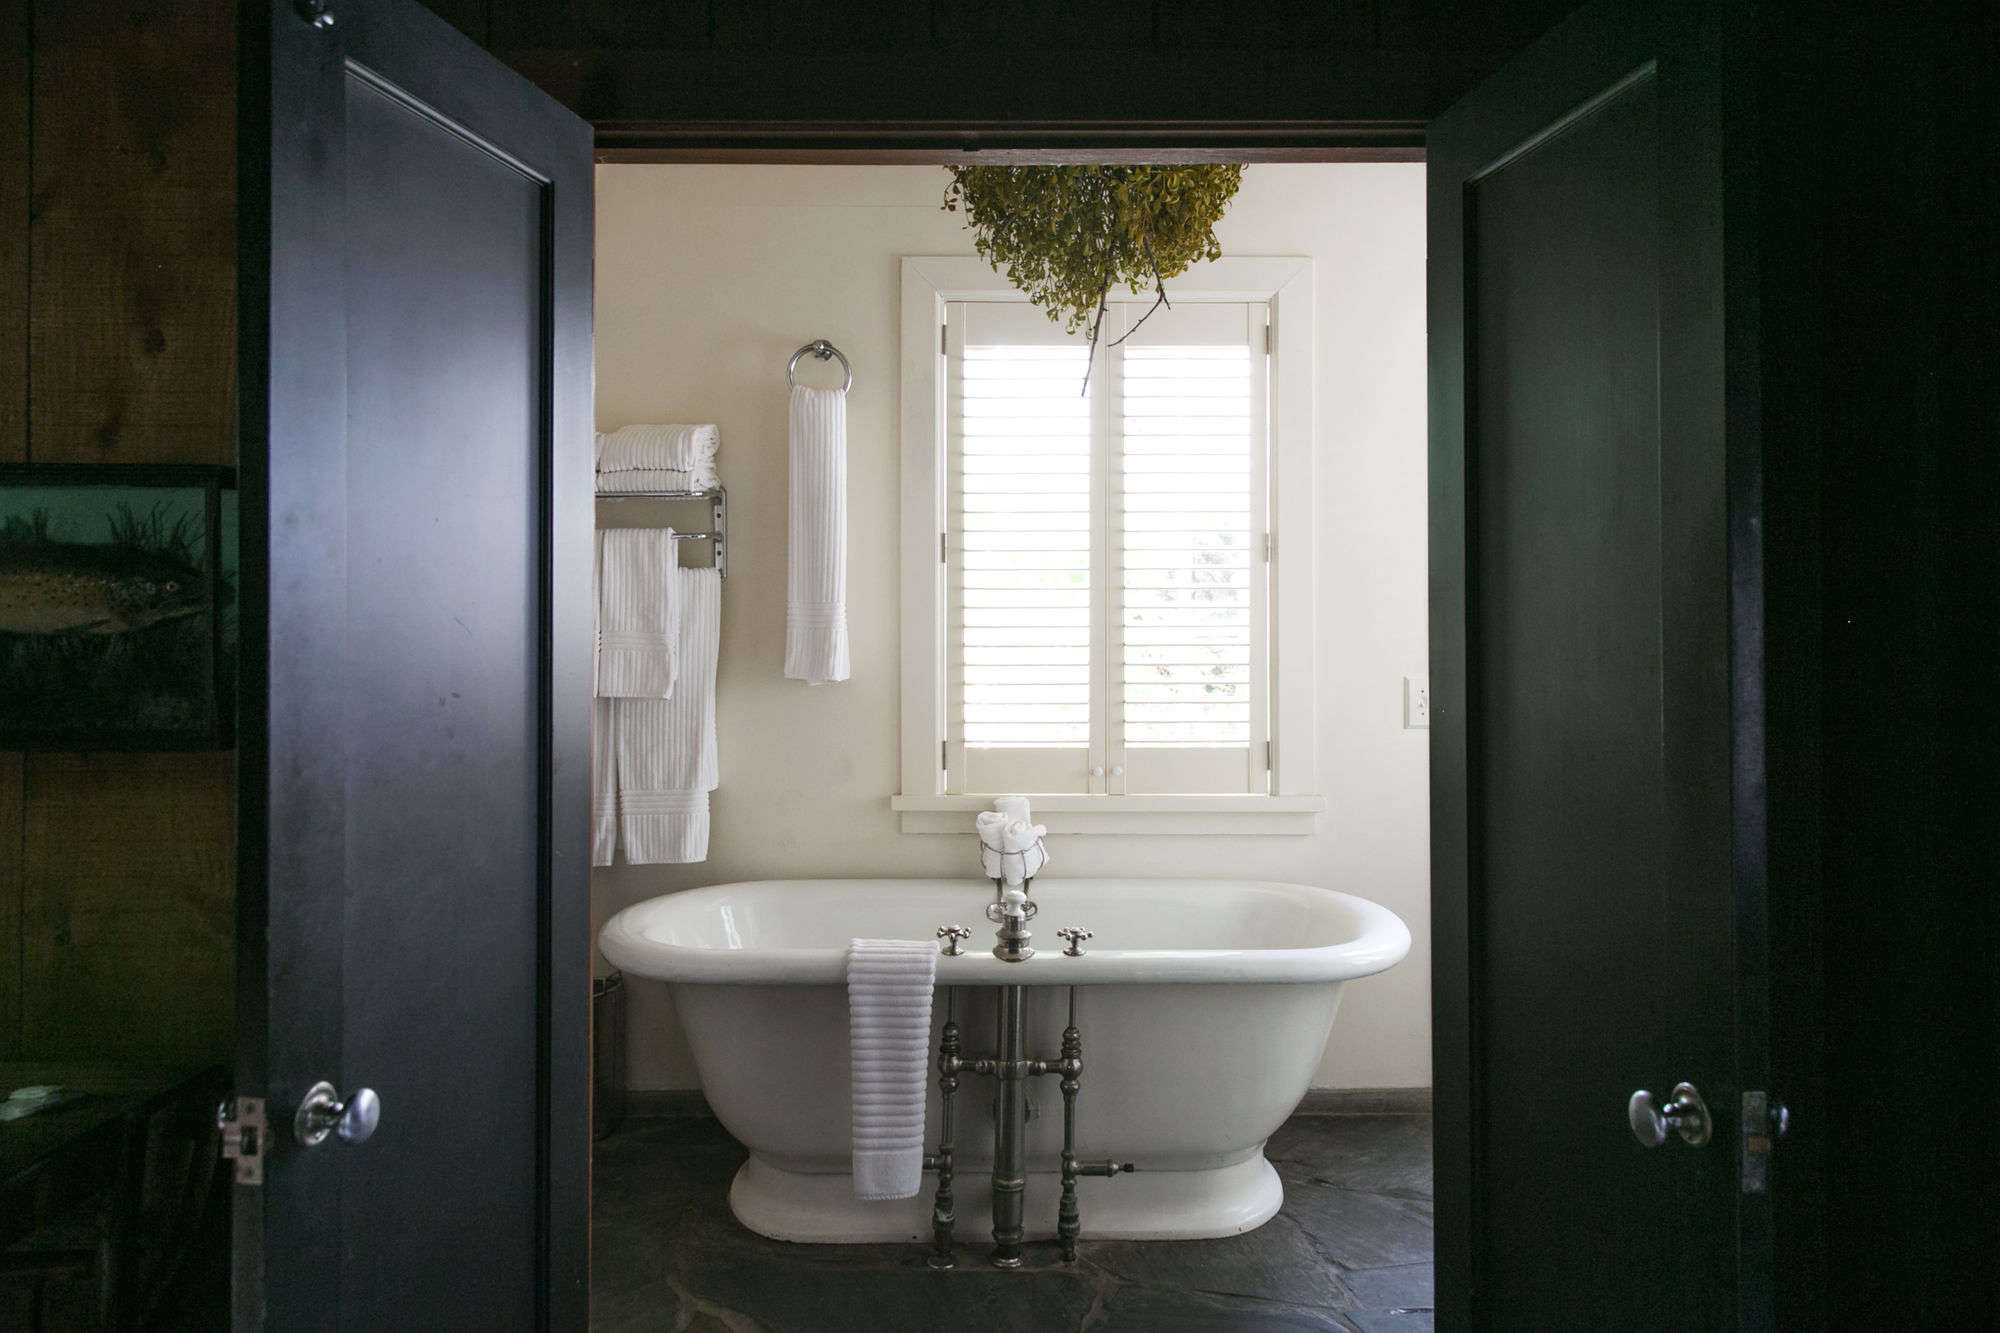 a ball of foraged mistletoe hangs above the freestanding tub in the cabin& 24